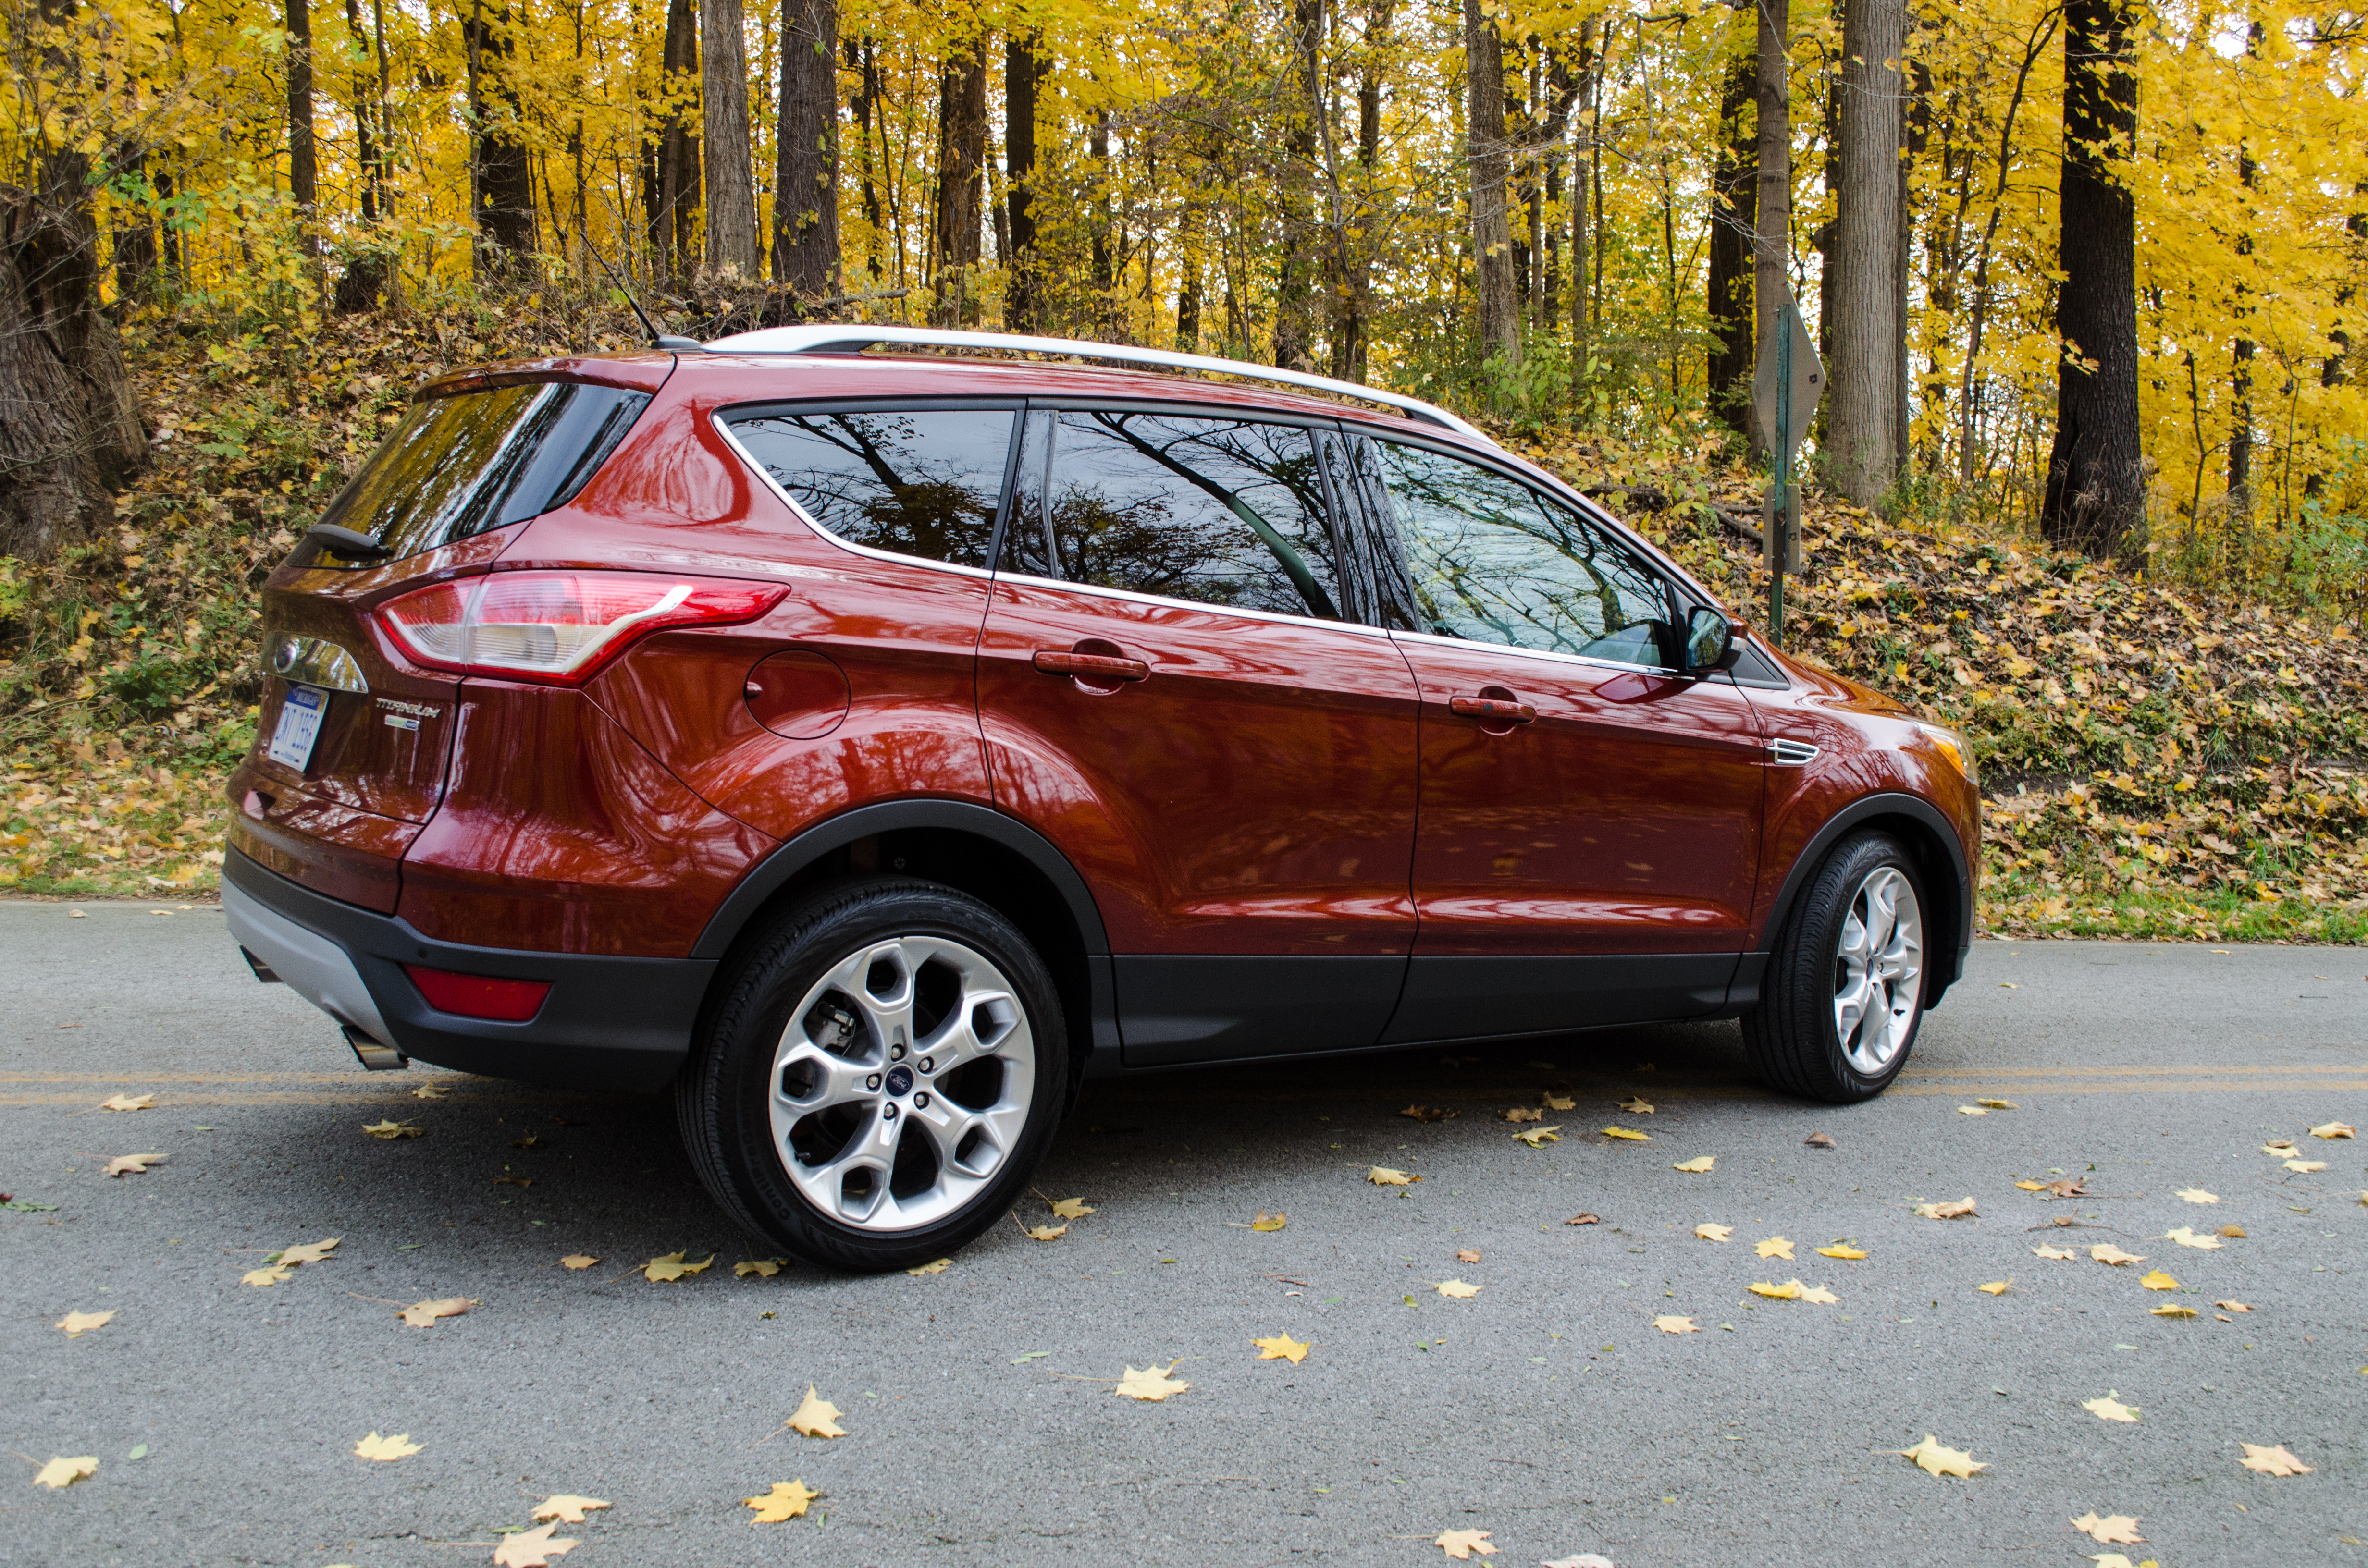 2014 Ford Escape Titanium 8 of 34  Motor Review